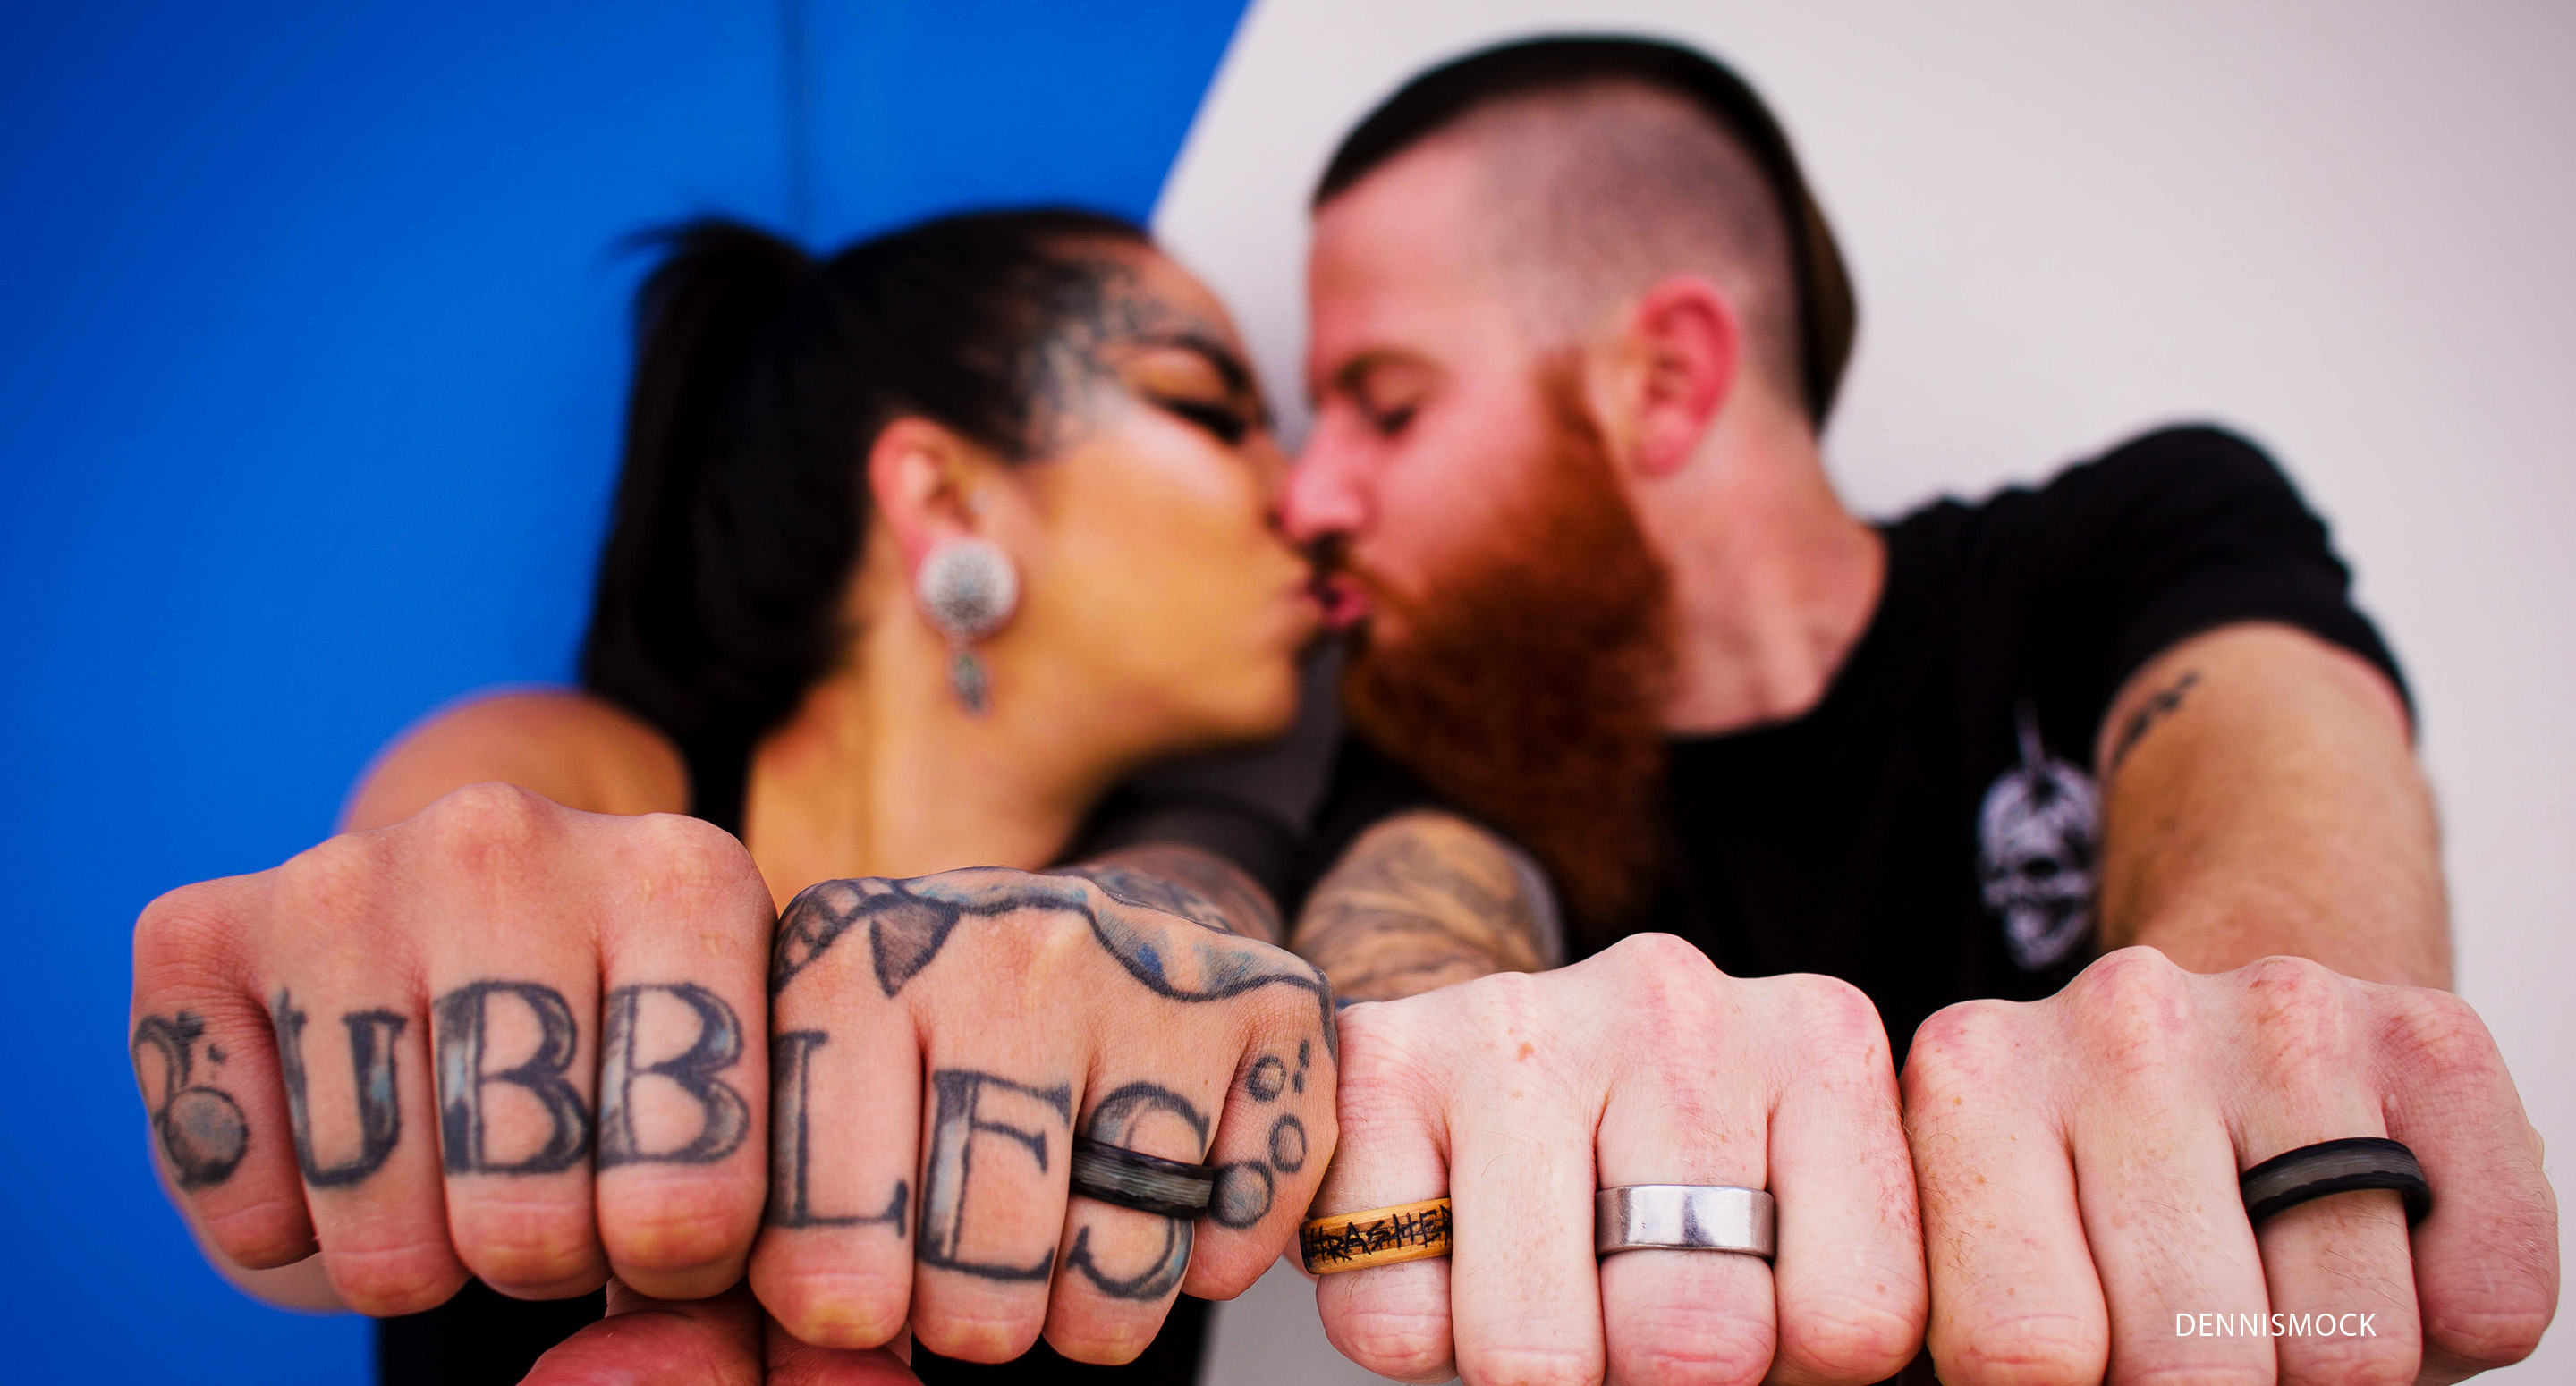 The power of a kiss. Couples showing off their ink during engagement photo session in downtown San Diego. Photo credit Dennis Mock photographer